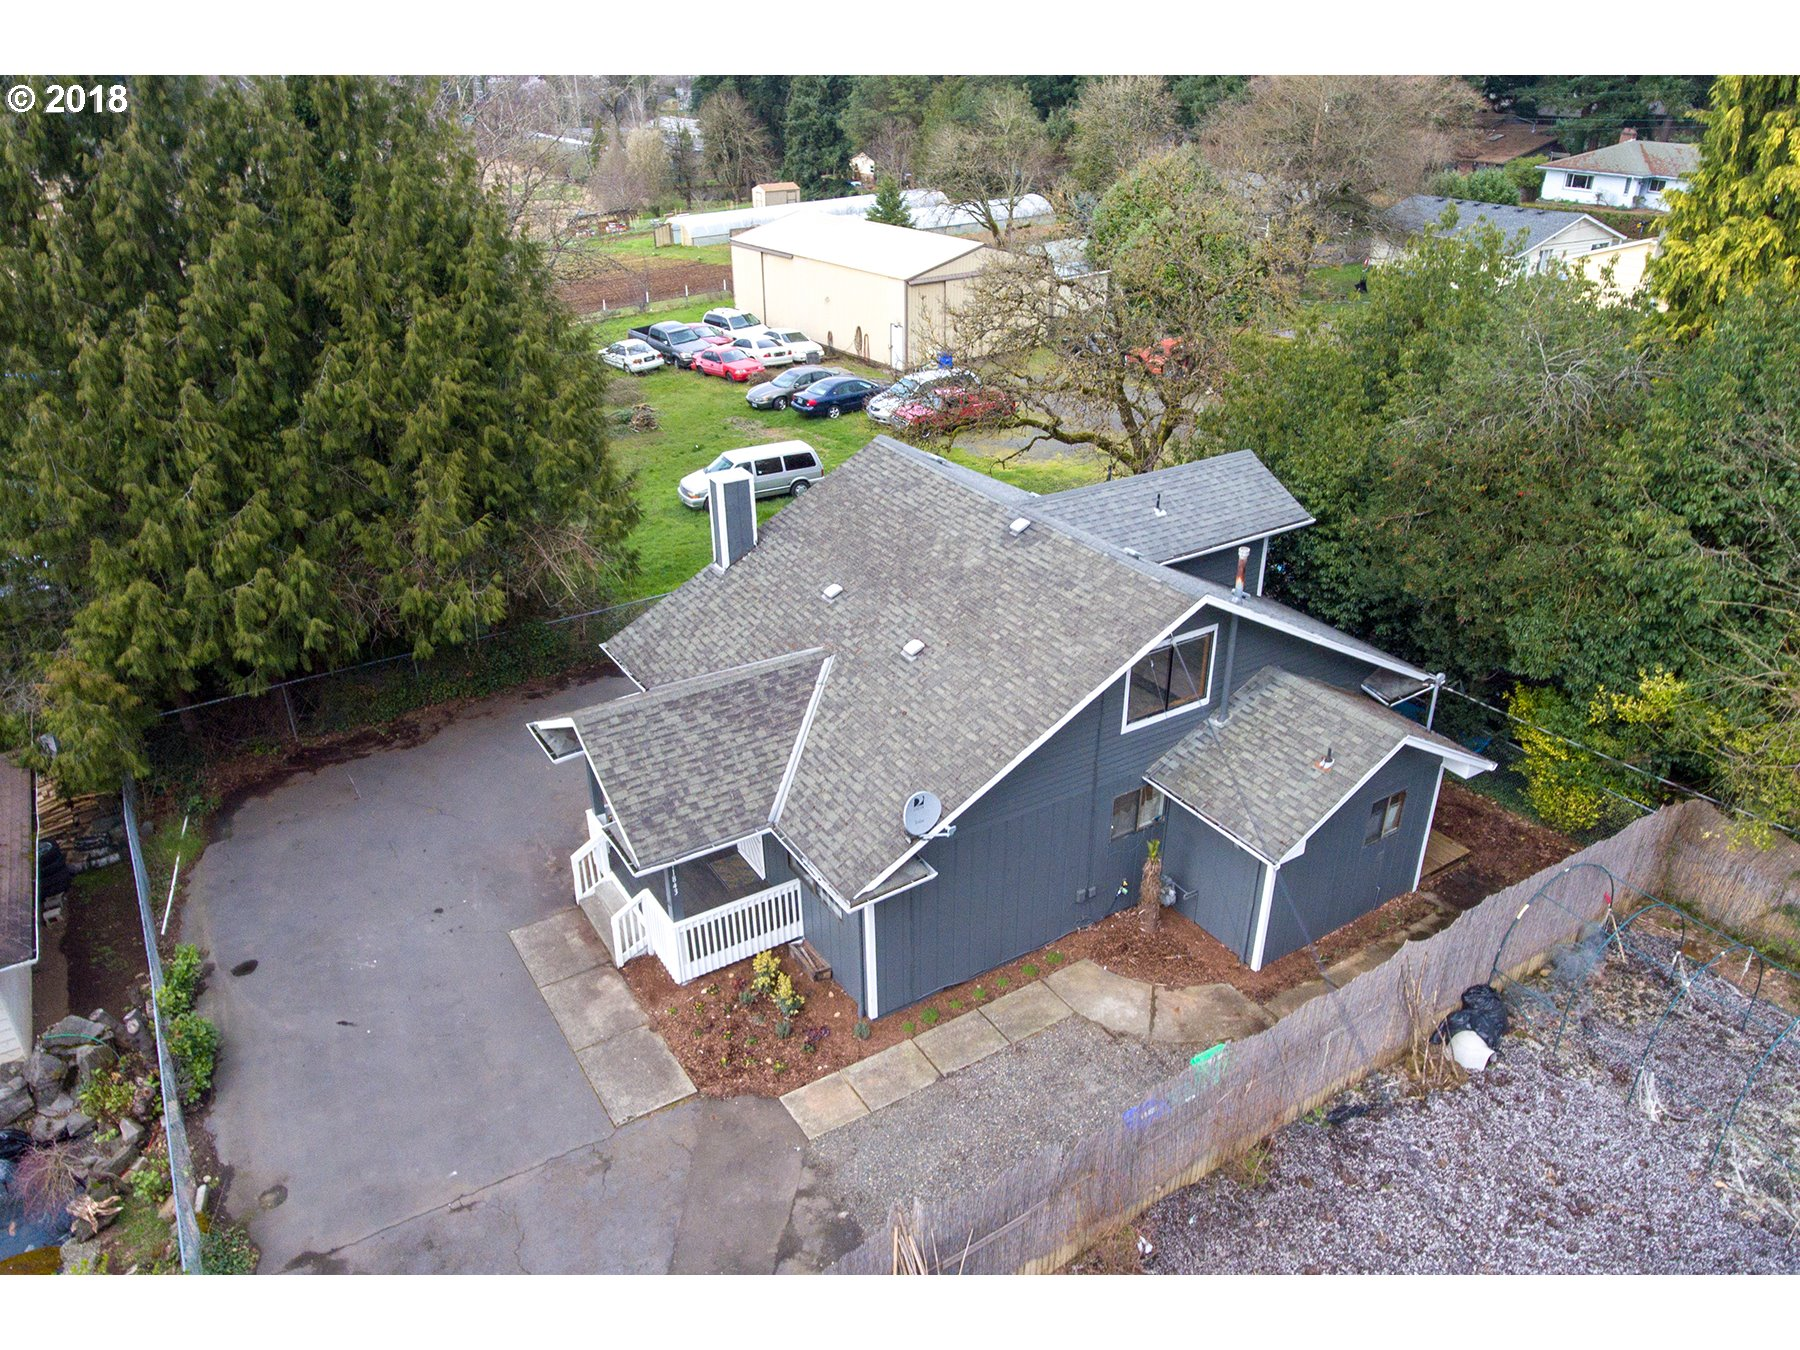 1481 sq. ft 3 bedrooms 2 bathrooms  House For Sale,Portland, OR